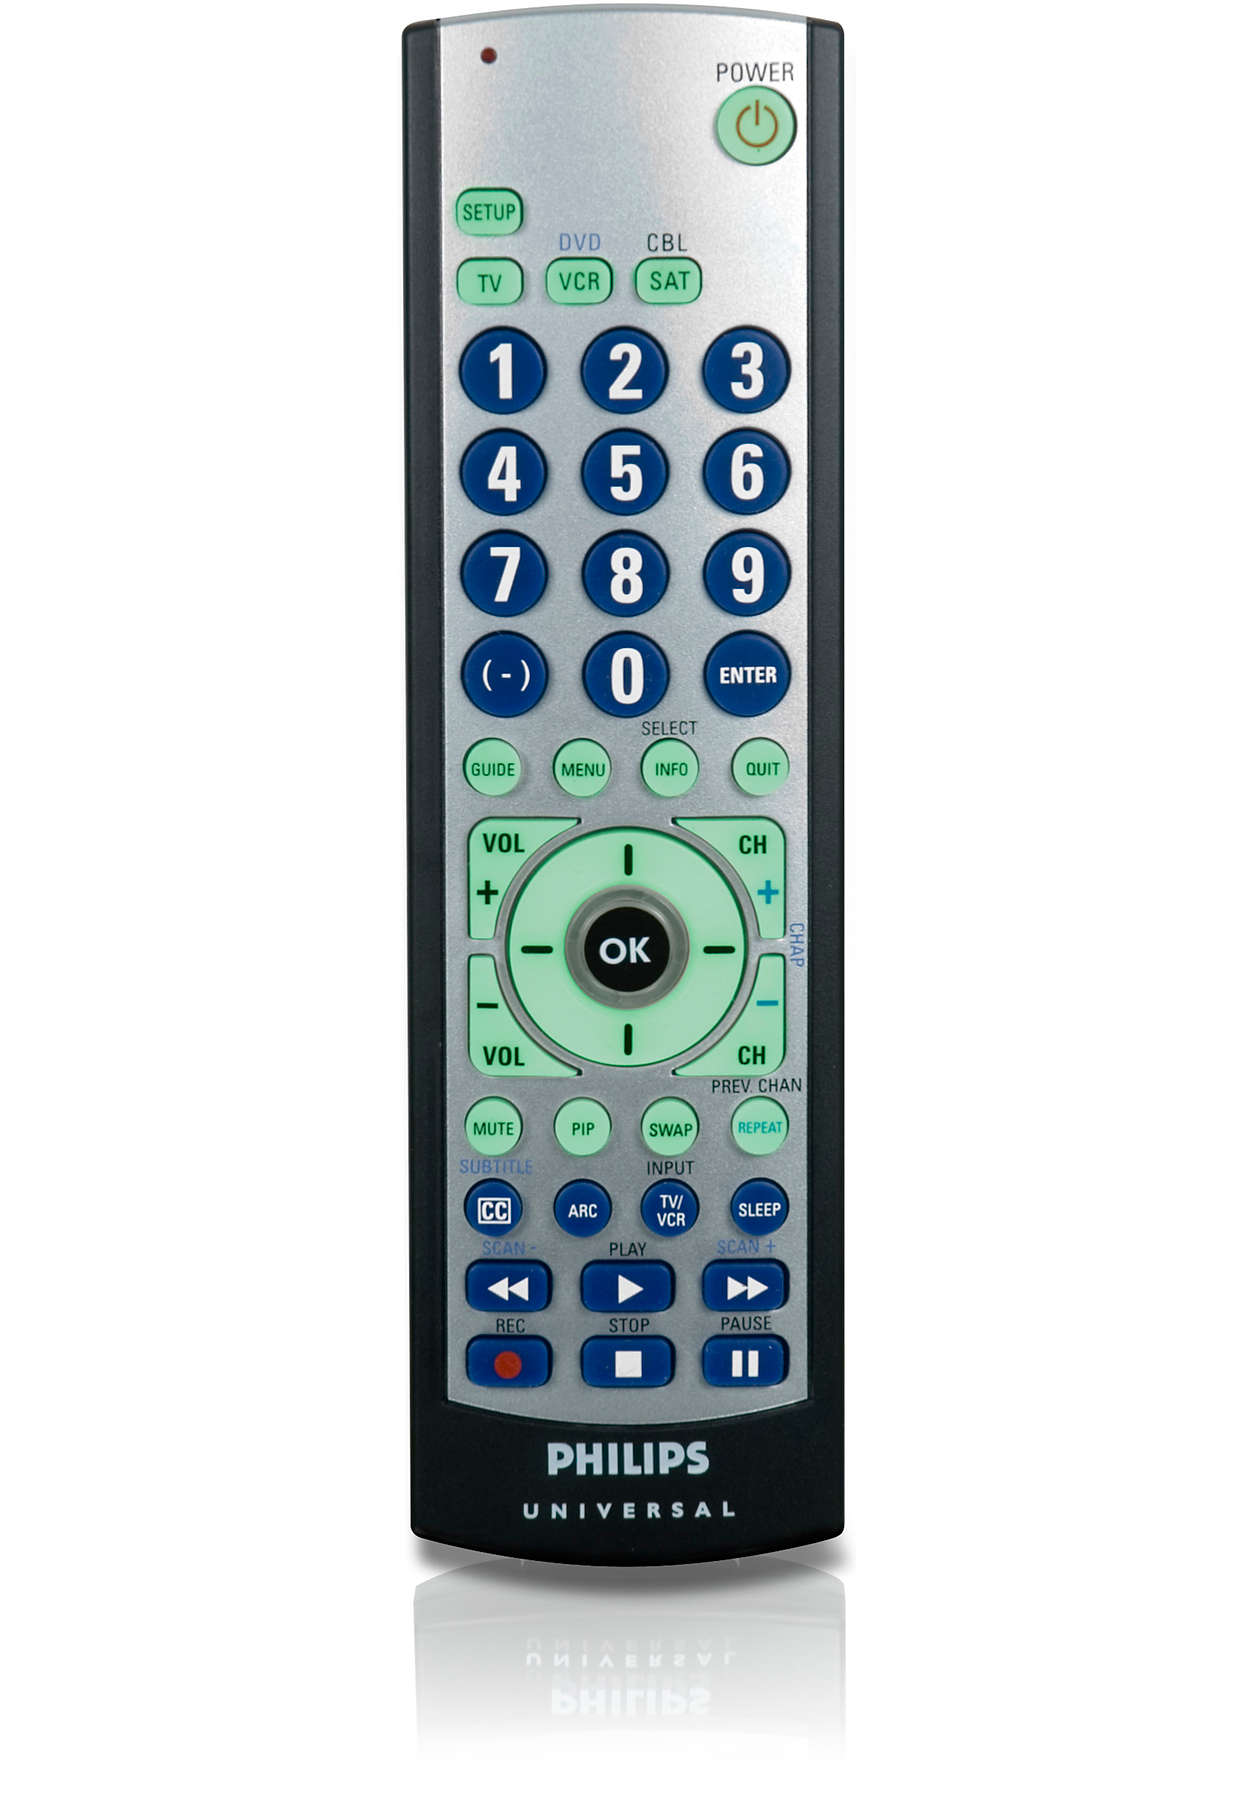 Perfect replacement for lost or broken remote.